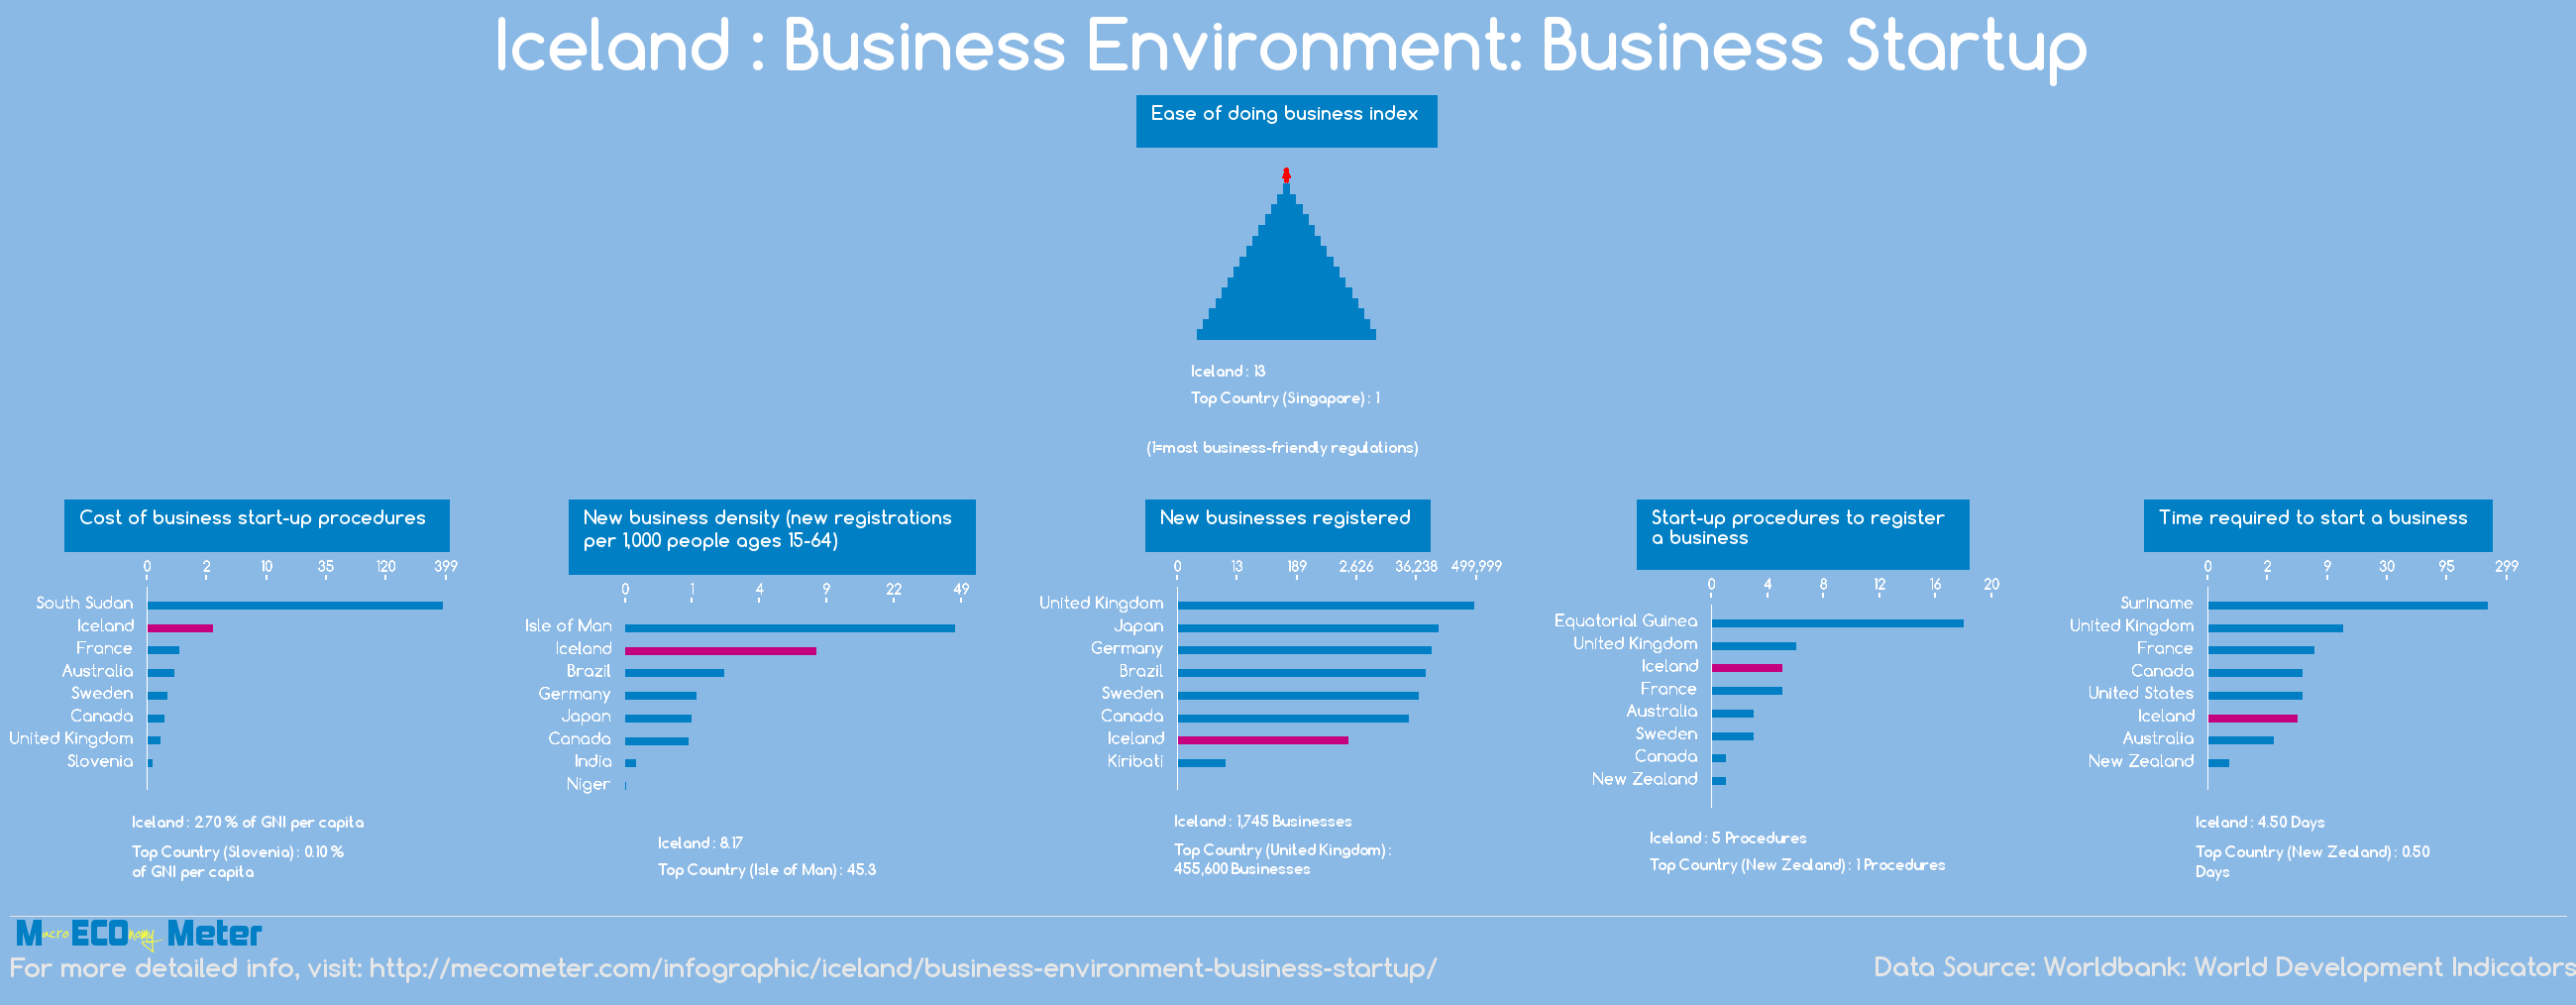 Iceland : Business Environment: Business Startup